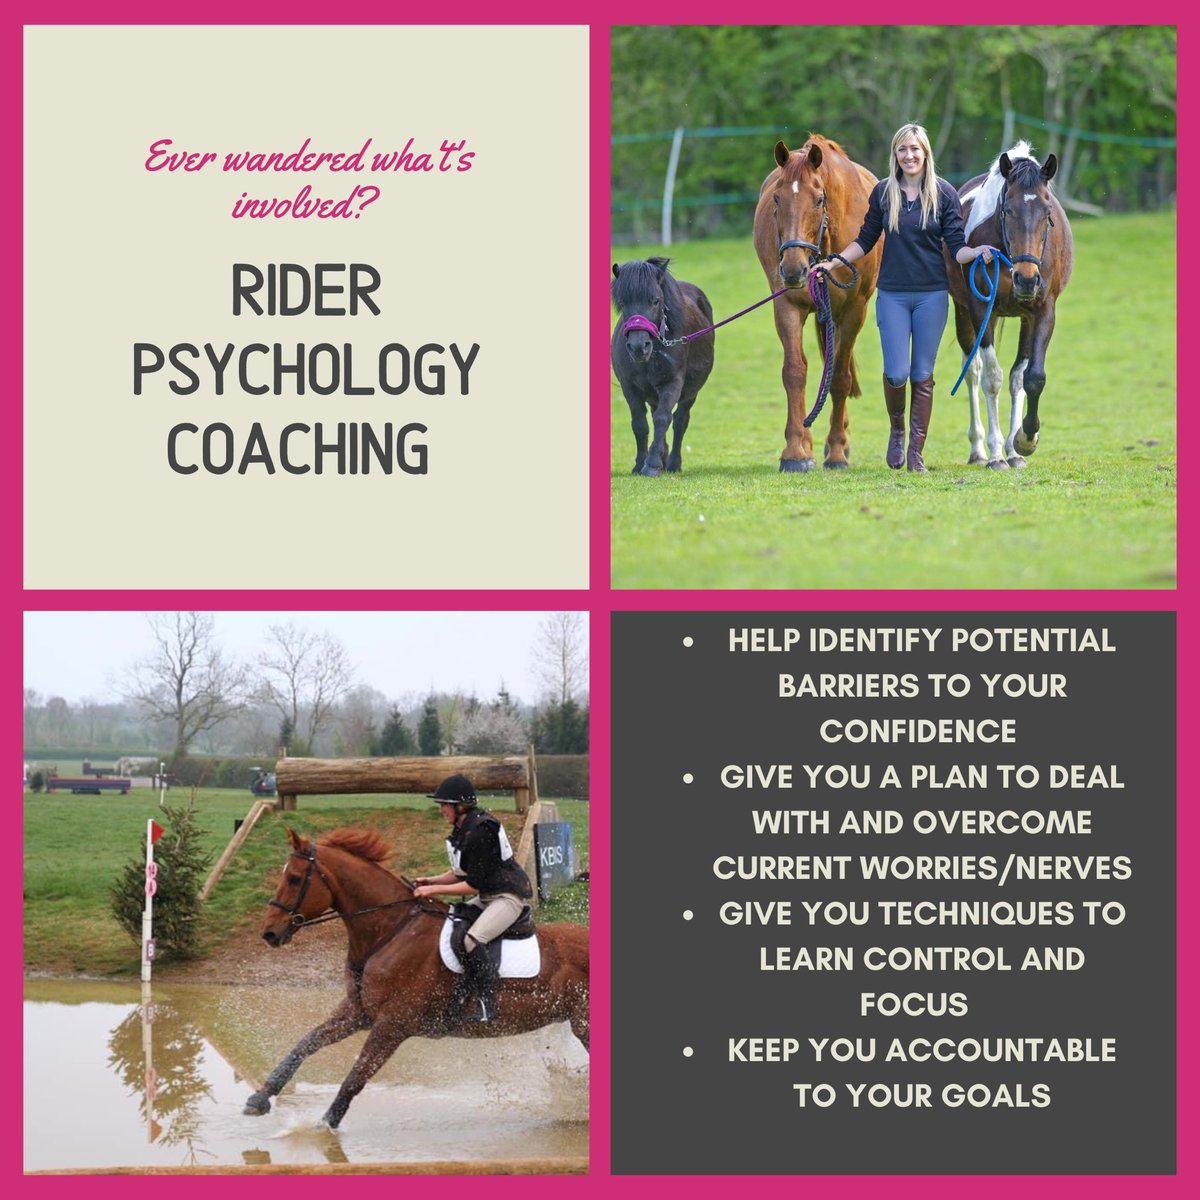 You don't need to be great... you just need to get started 💪💪 Brill group rider psychology session last night.   #horses #motivationalquotes #country #mindset #nature #life #lifestyle #success #love #motivation #happy #selflove #goals  #business #positivevibes  #inspiration